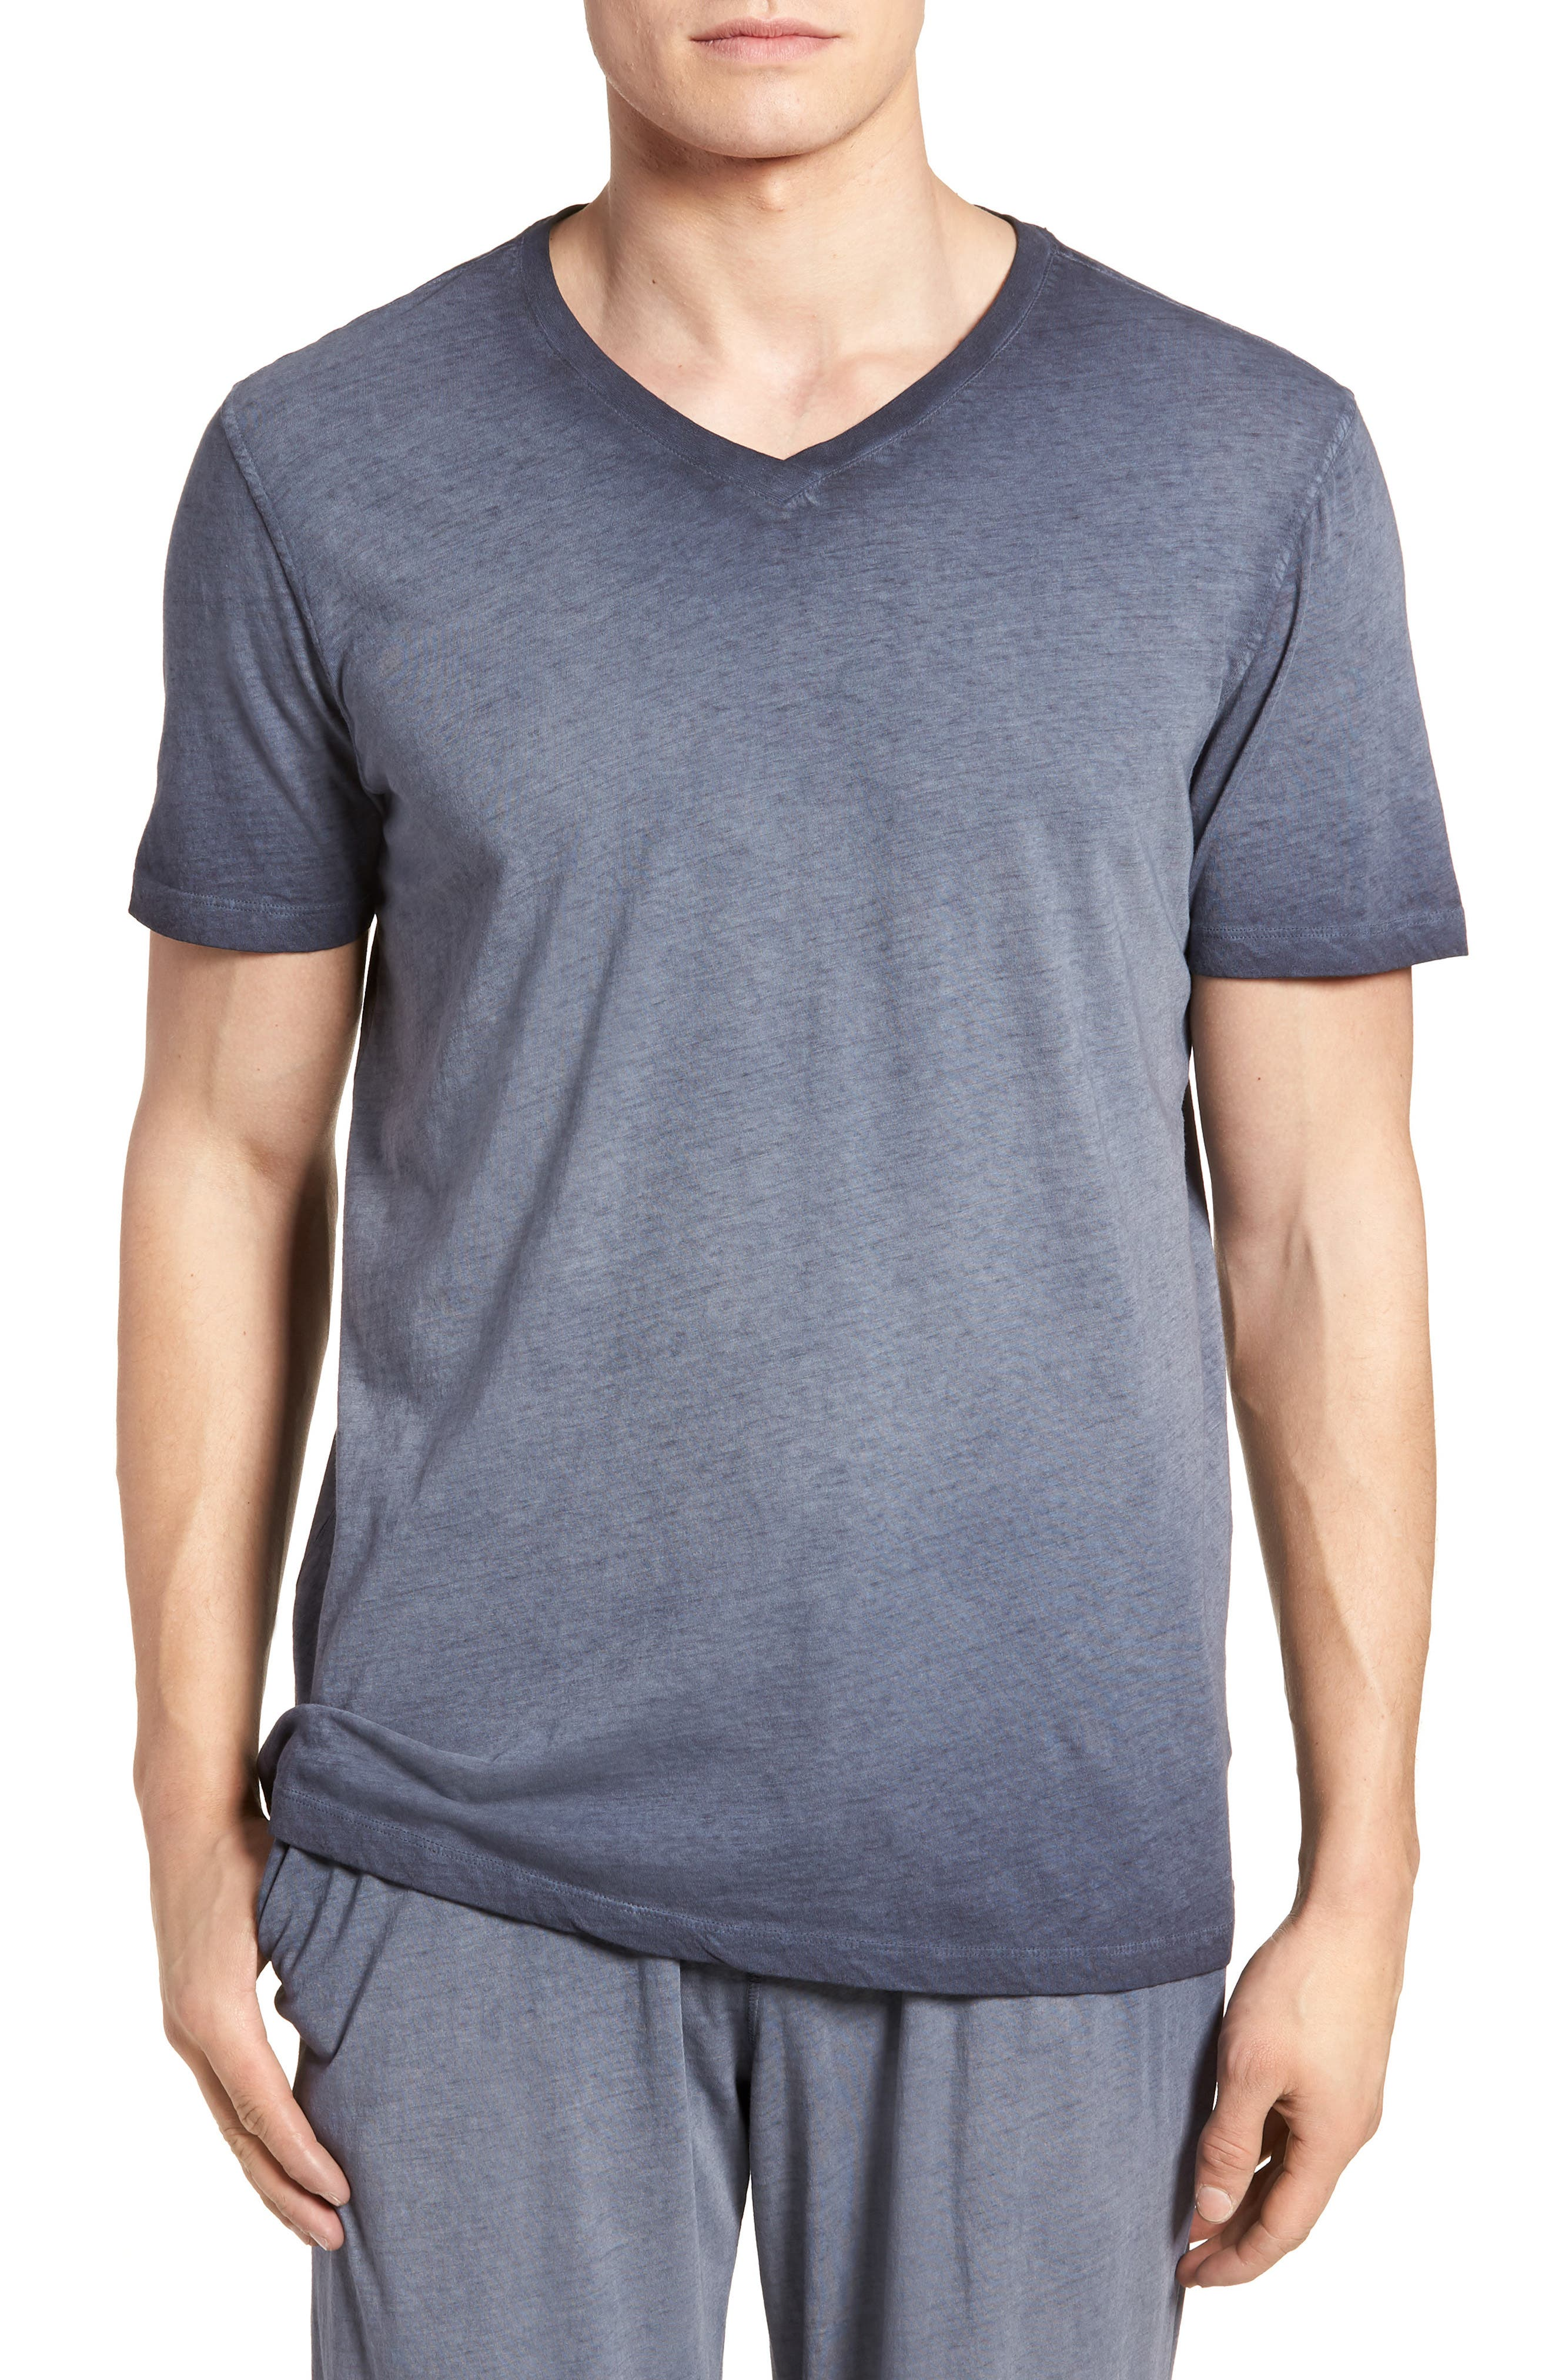 Daniel Buchler Vintage Wash Cotton T-Shirt